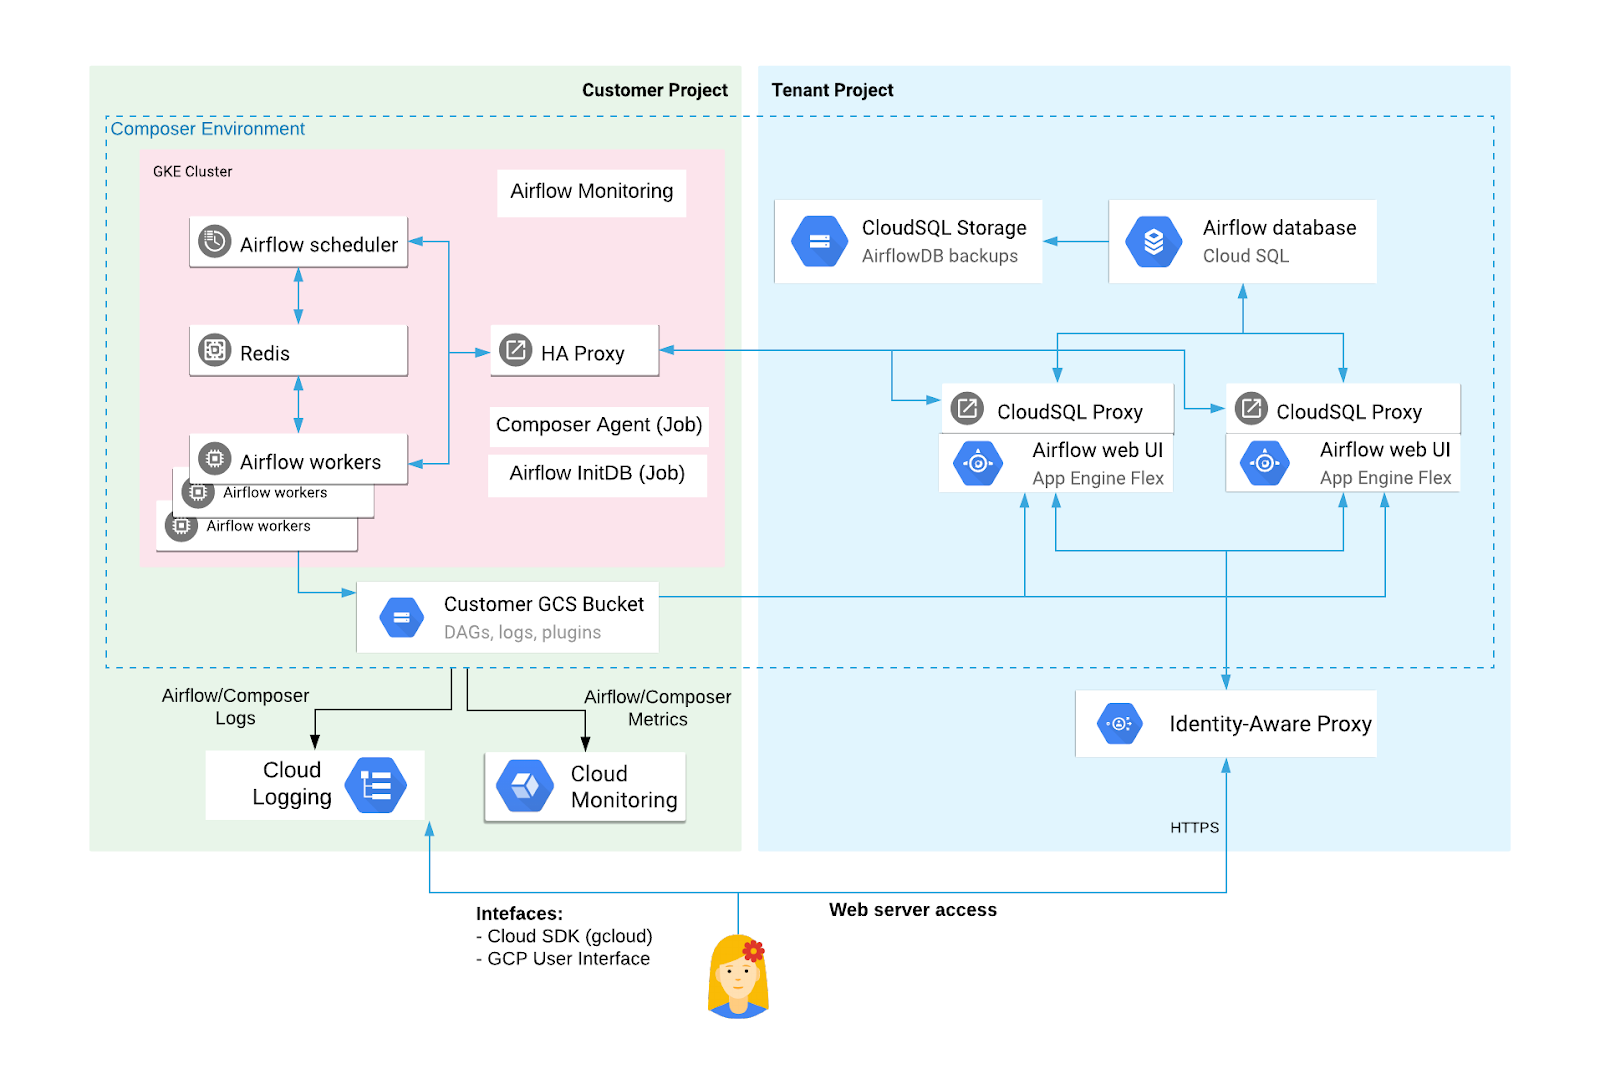 Private IP Cloud Composer environment resources in the tenant project and the customer project (click to enlarge)